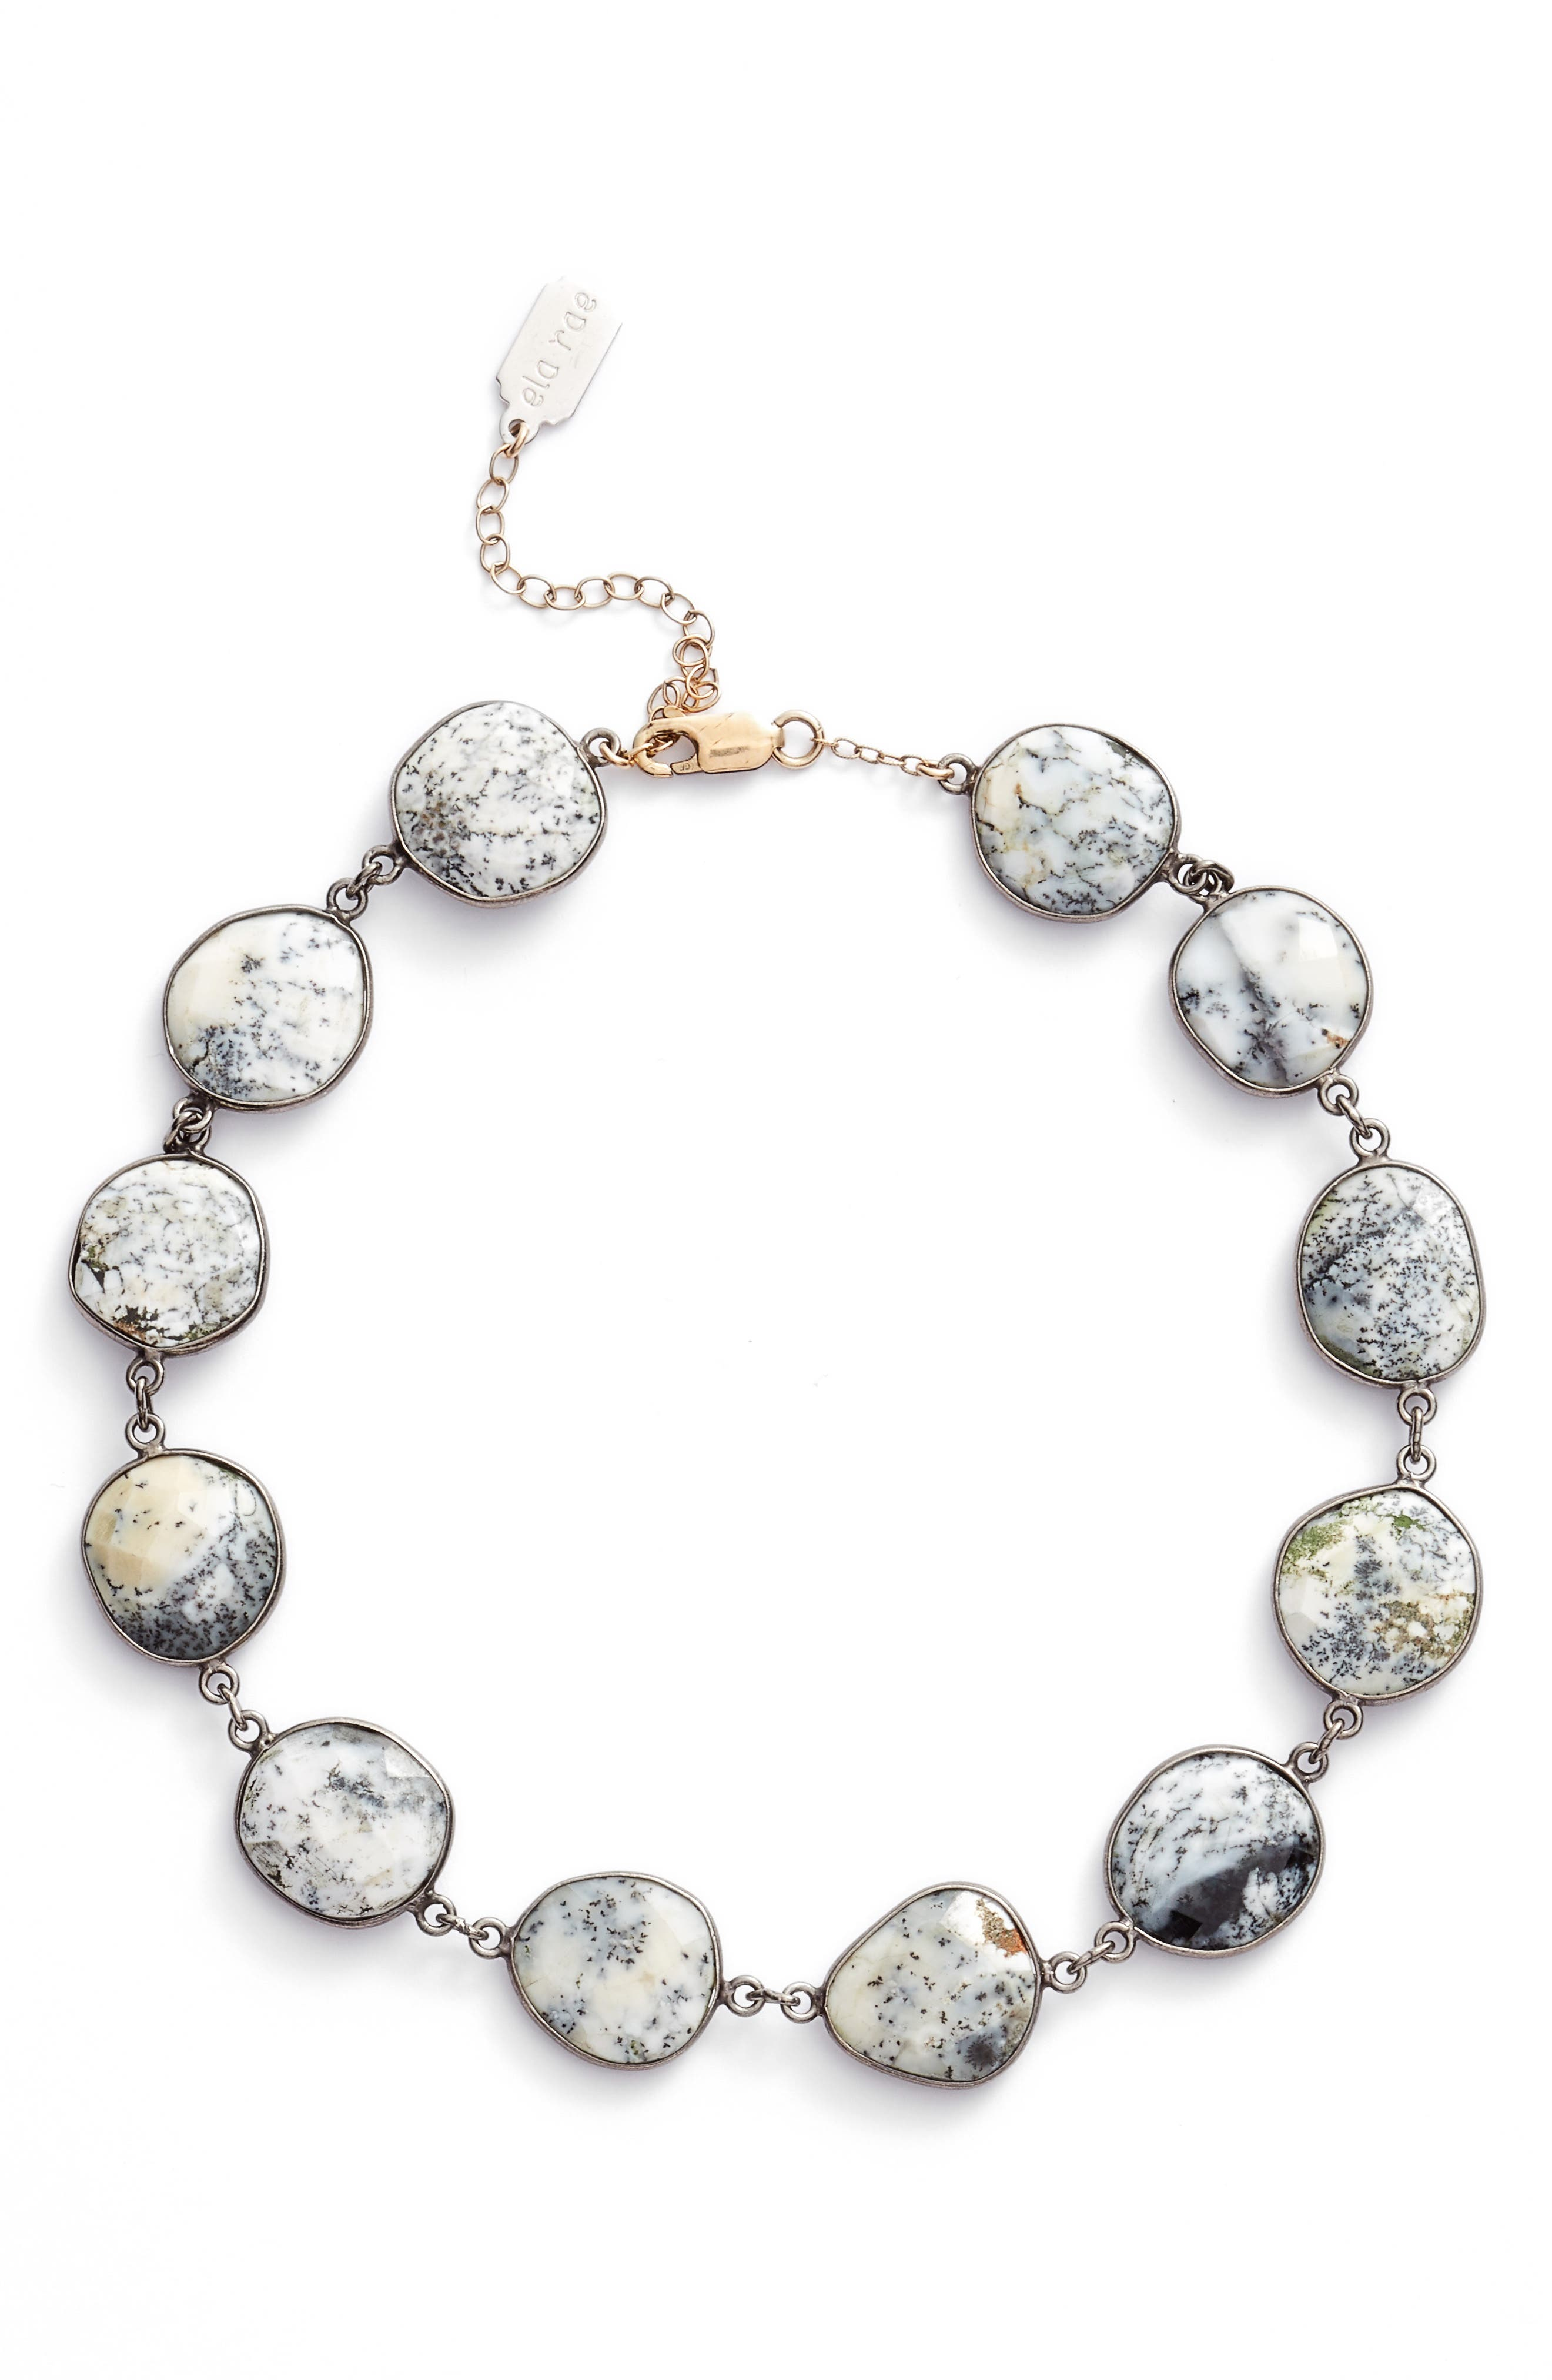 ELA RAE Suze Semiprecious Stone Collar Necklace